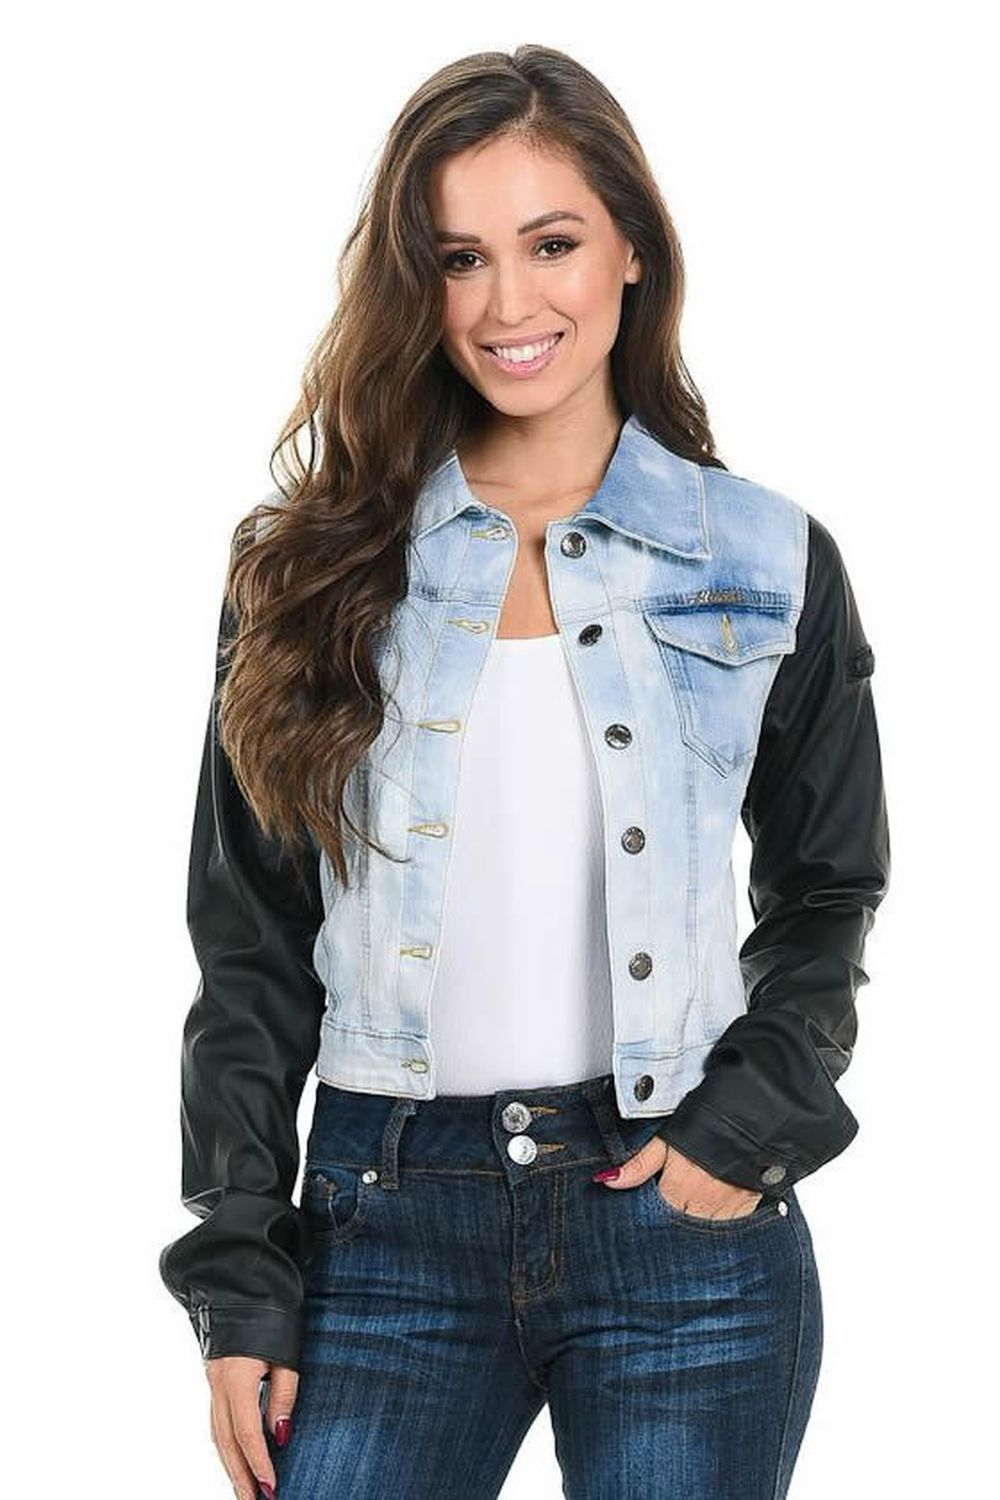 M.Michel Women's Denim Jacket - Winter Haven Co